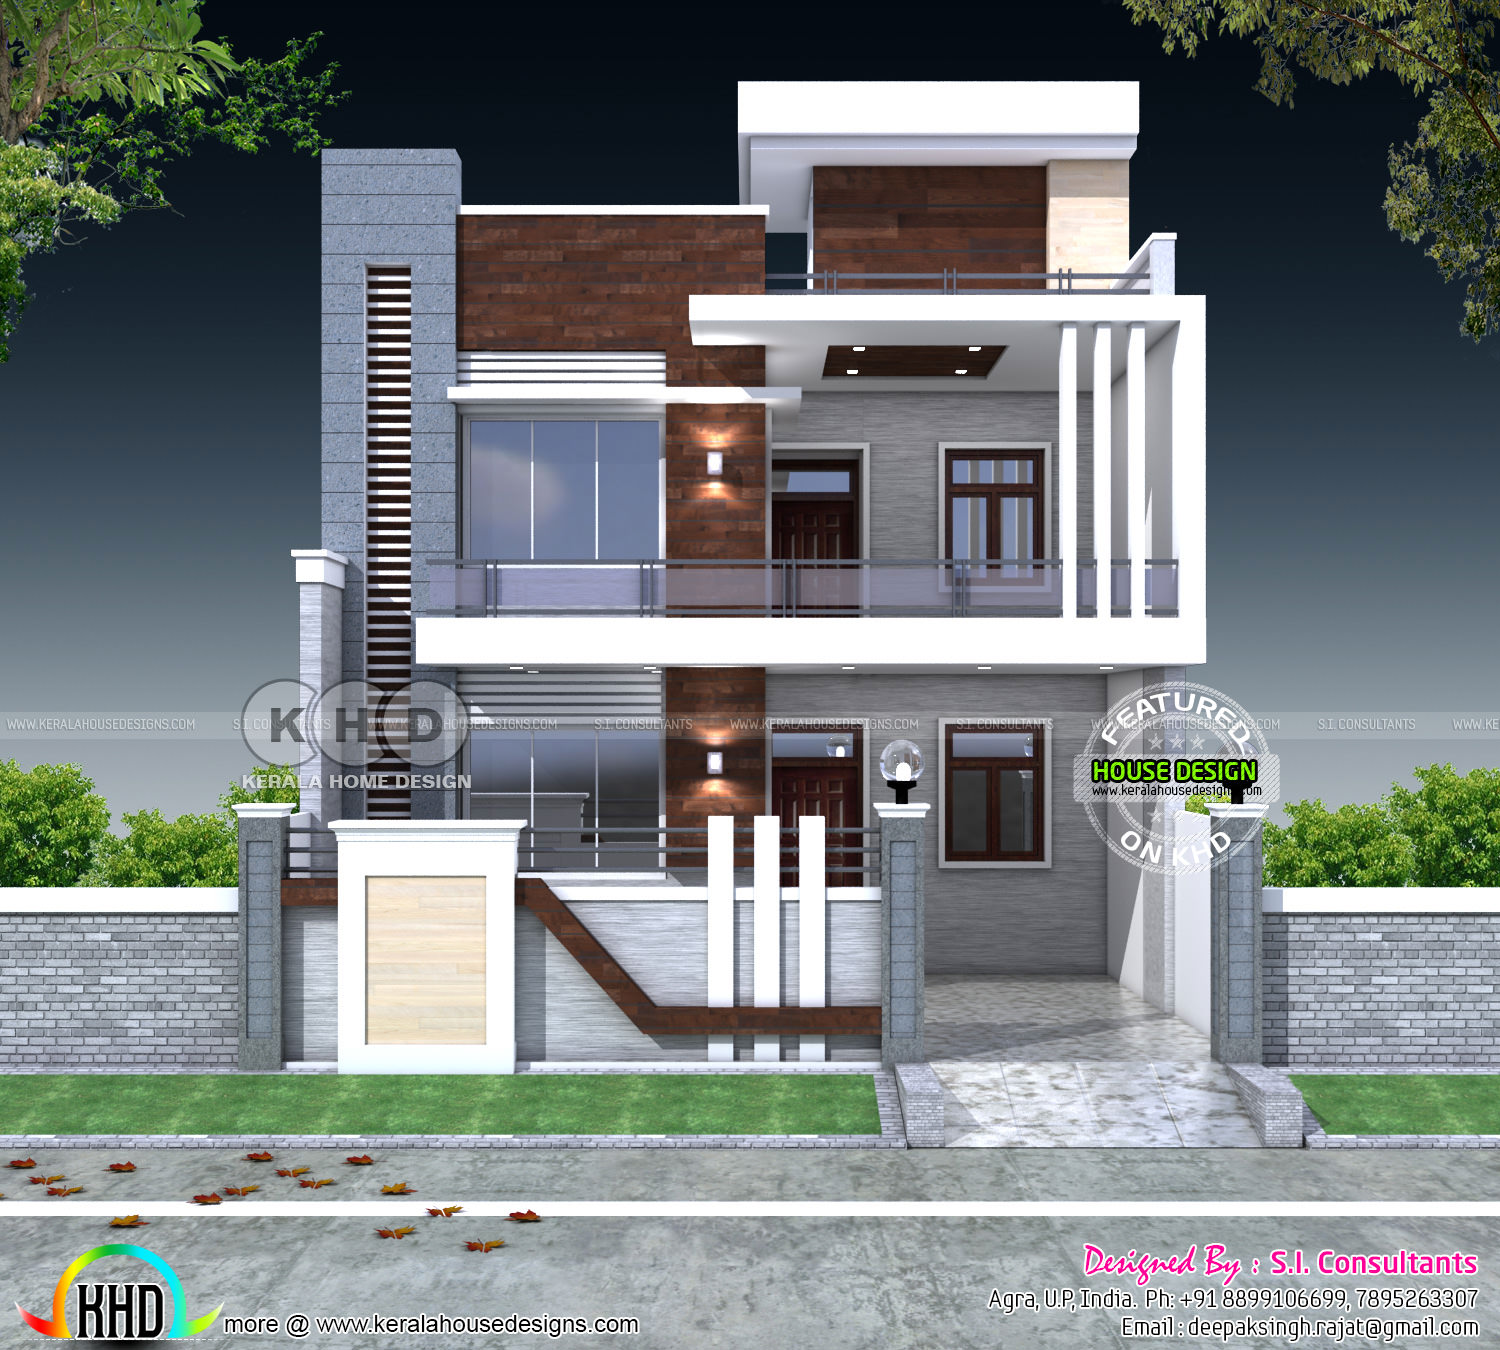 Home Design Of India 5 Bedroom Flat Roof Contemporary India Home Kerala Home Design